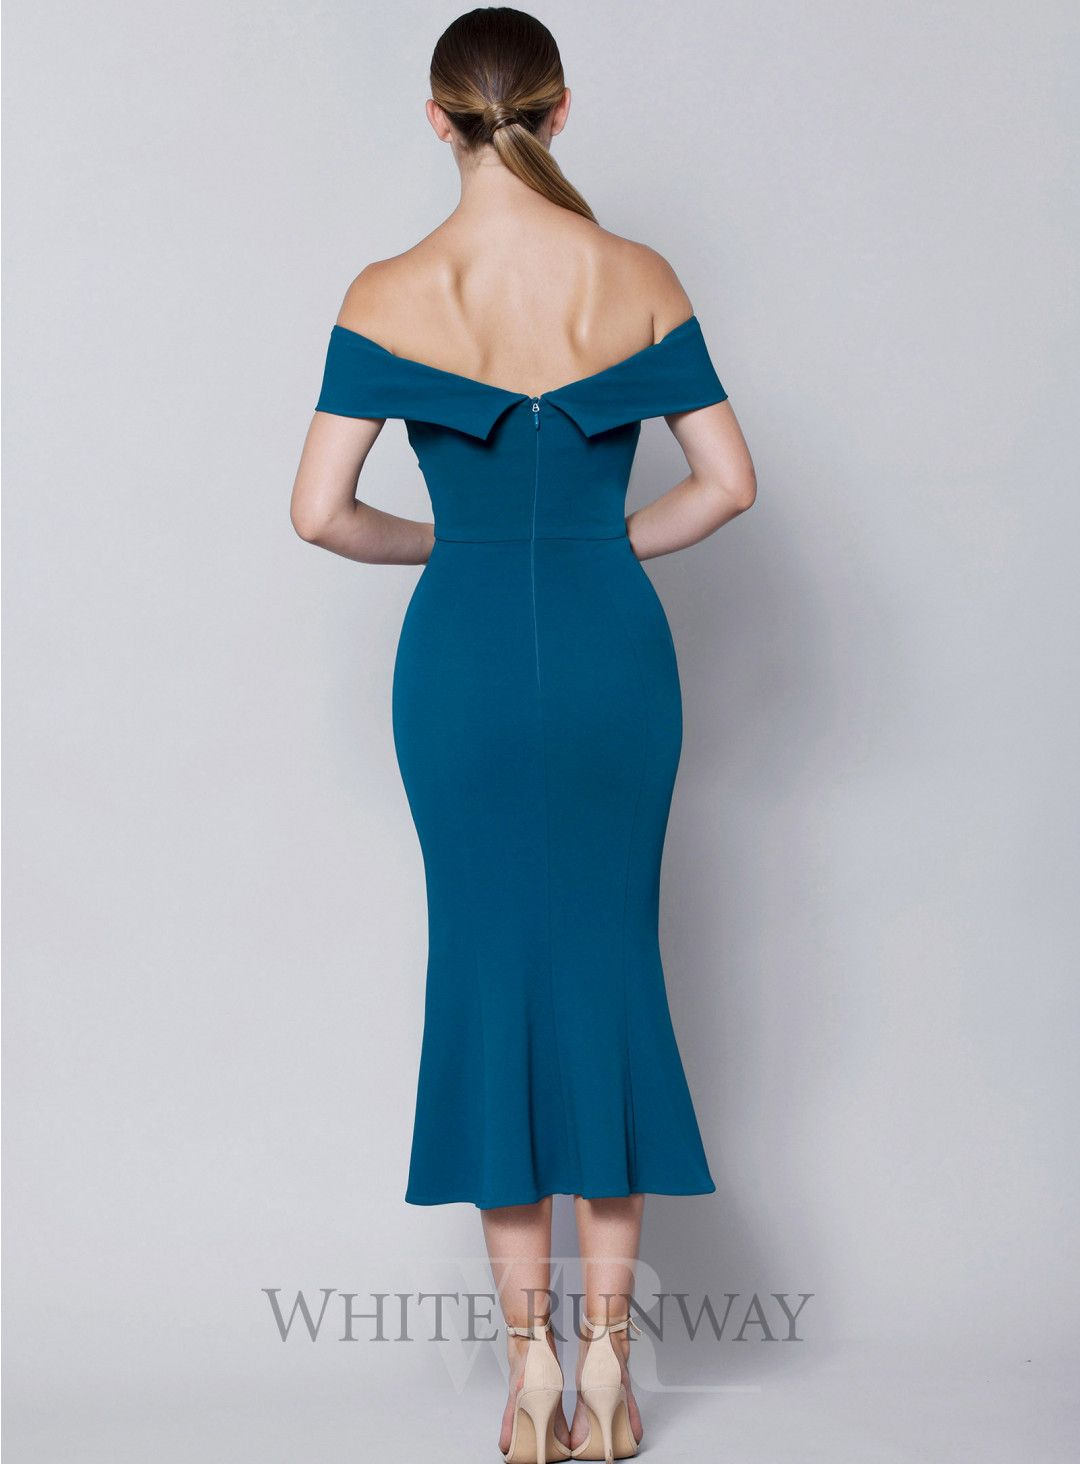 933c6f0ecf10 A beautiful midi dress by Lumier. An off shoulder style featuring tie knot  at the bust and frill skirt hem.  bridesmaid  weddinginspo  weddingideas ...